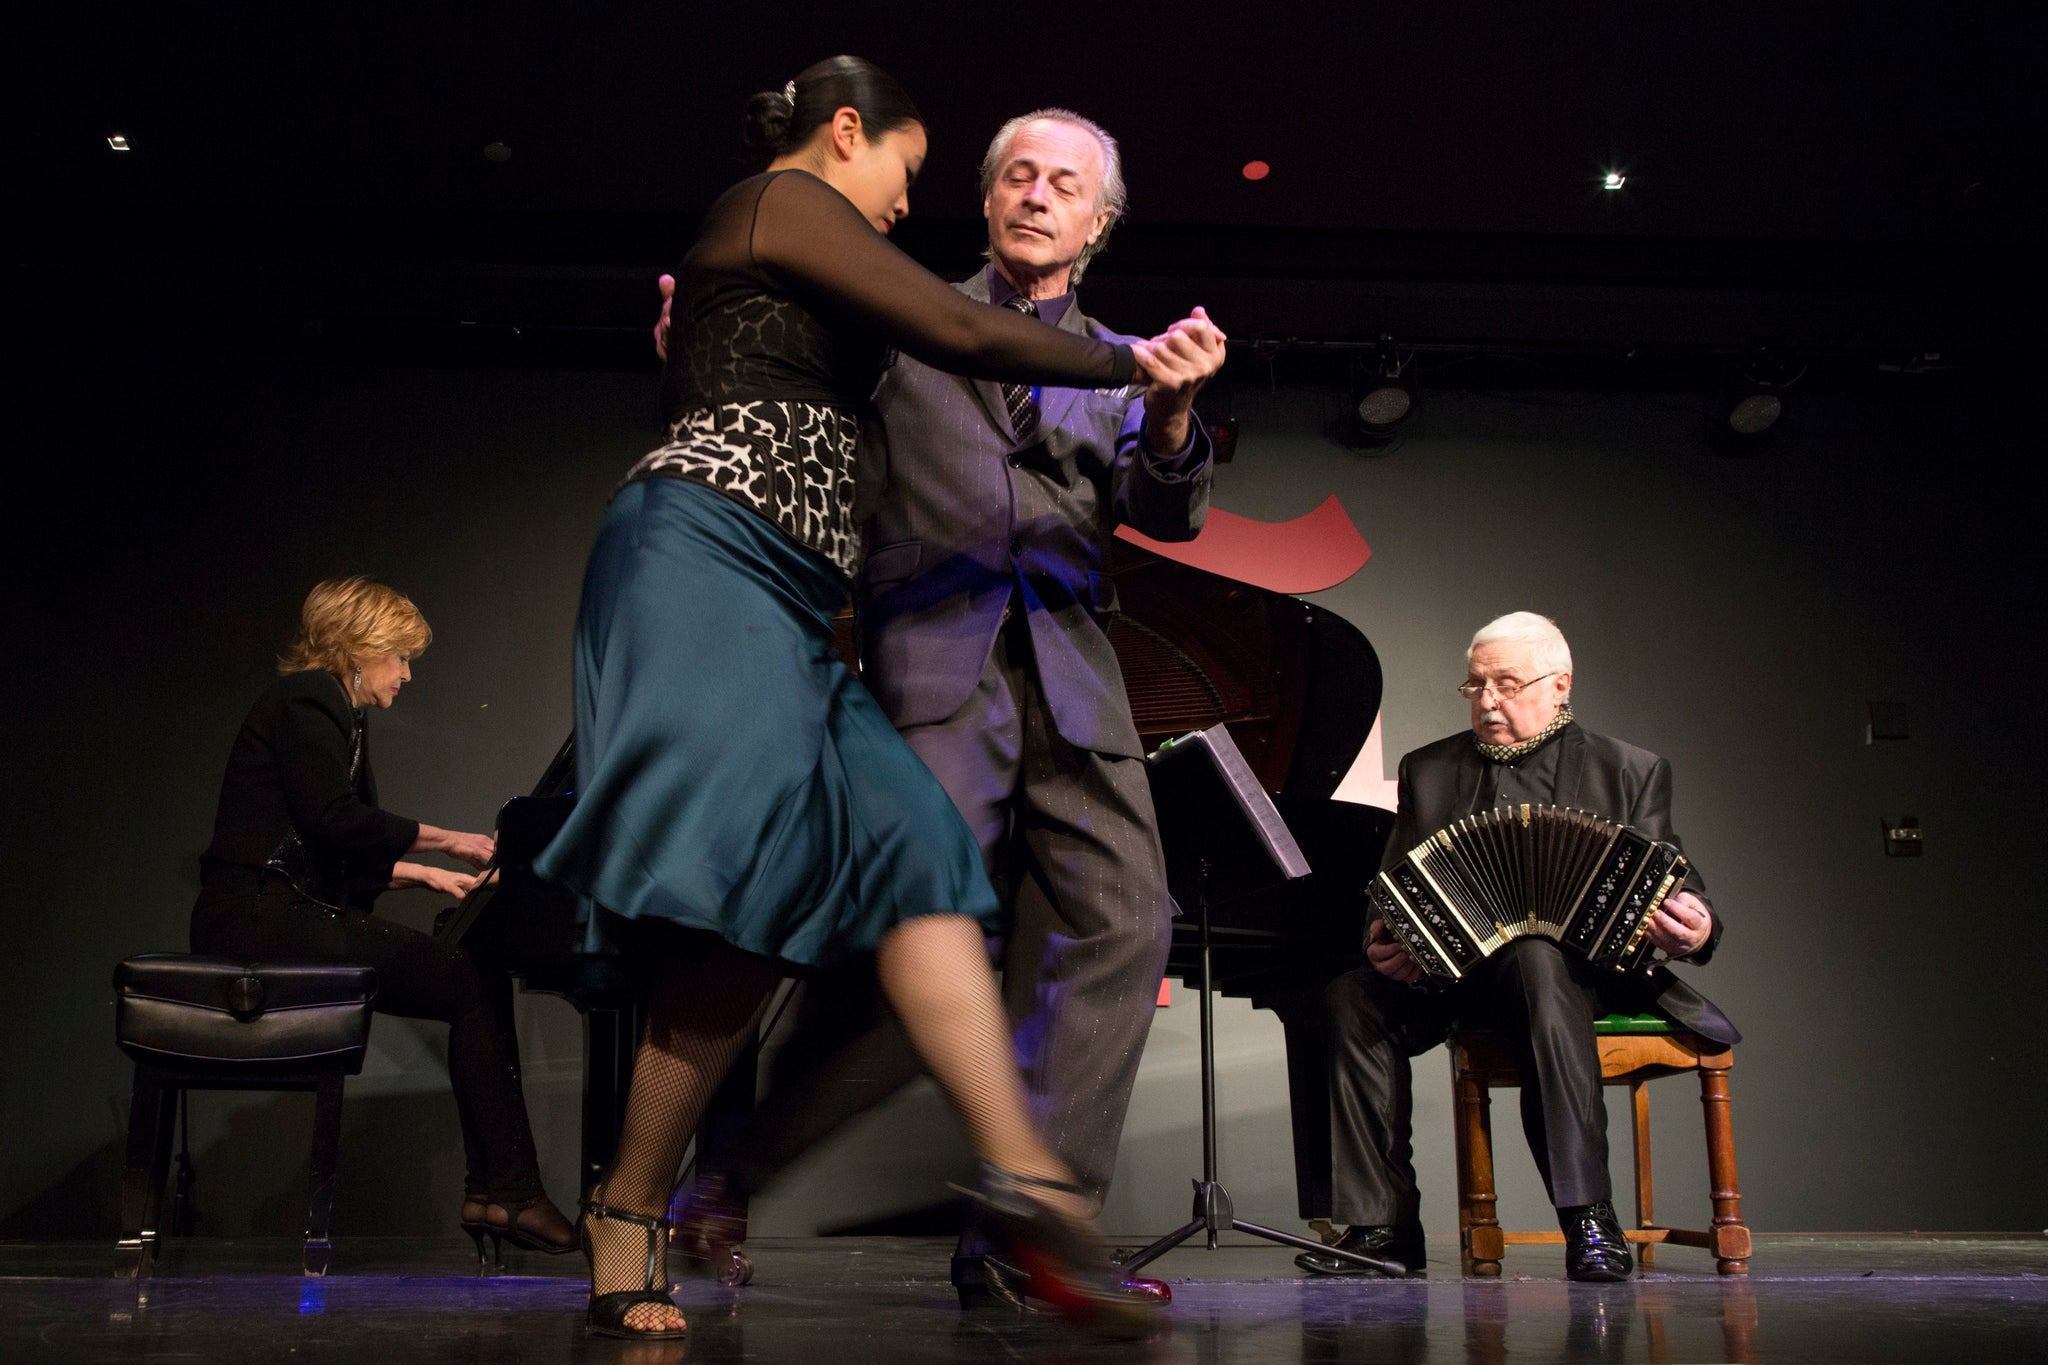 A Tango Show, Hosted by the International Latino Cultural Center of Chicago